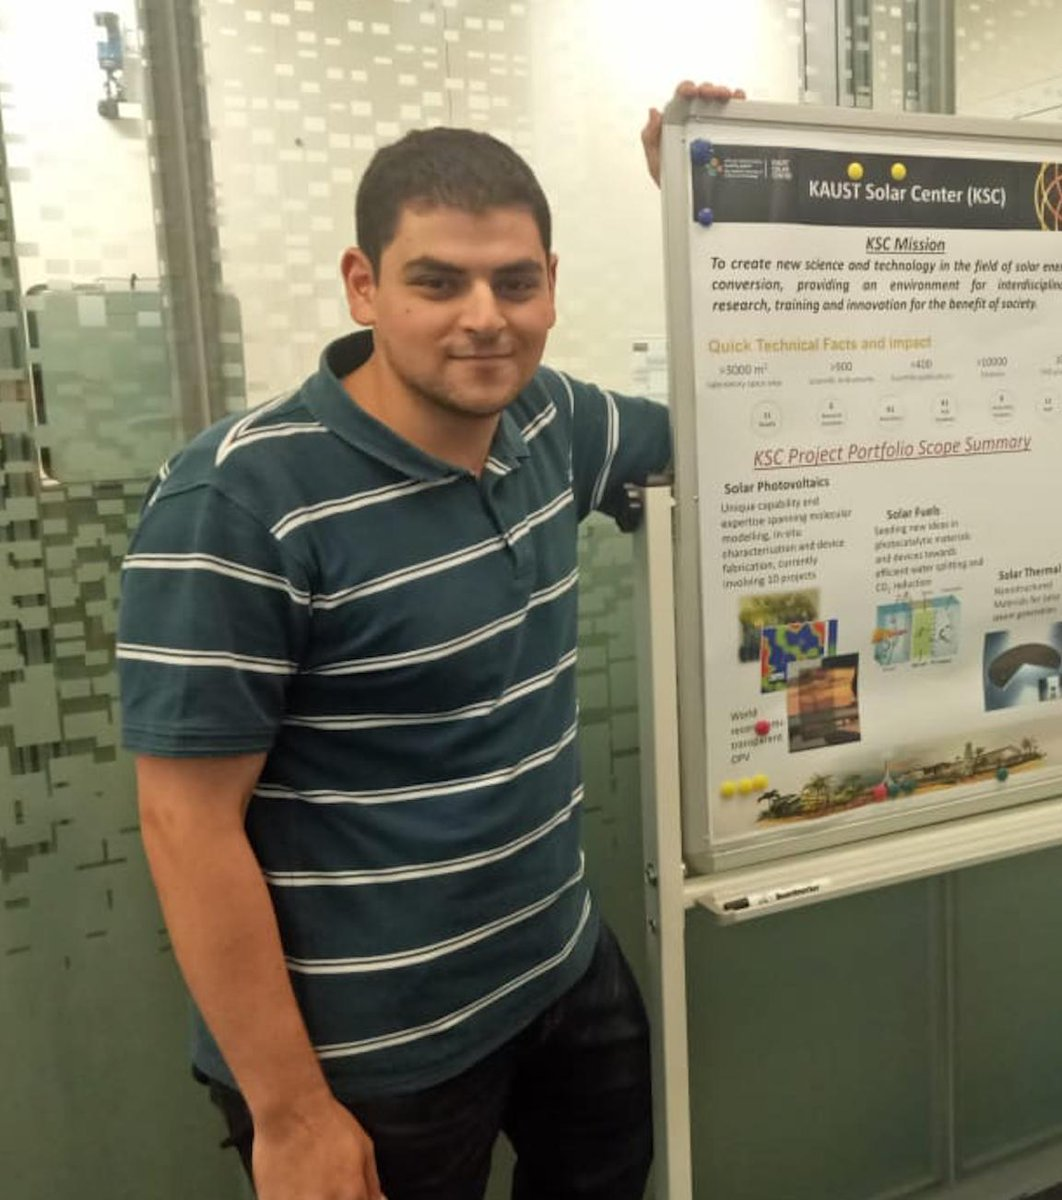 Undergraduate student Waleed Koubeisi from local University KAU joins us for his Summer internship - 08/05/19Welcome to the OMEGA Group Waleed Koubeisi! Waleed is an undergrad student in his last year at KAU University, who will be with us for the next 4 months, working on DC-DC converters for applications in solar energy harvesting.